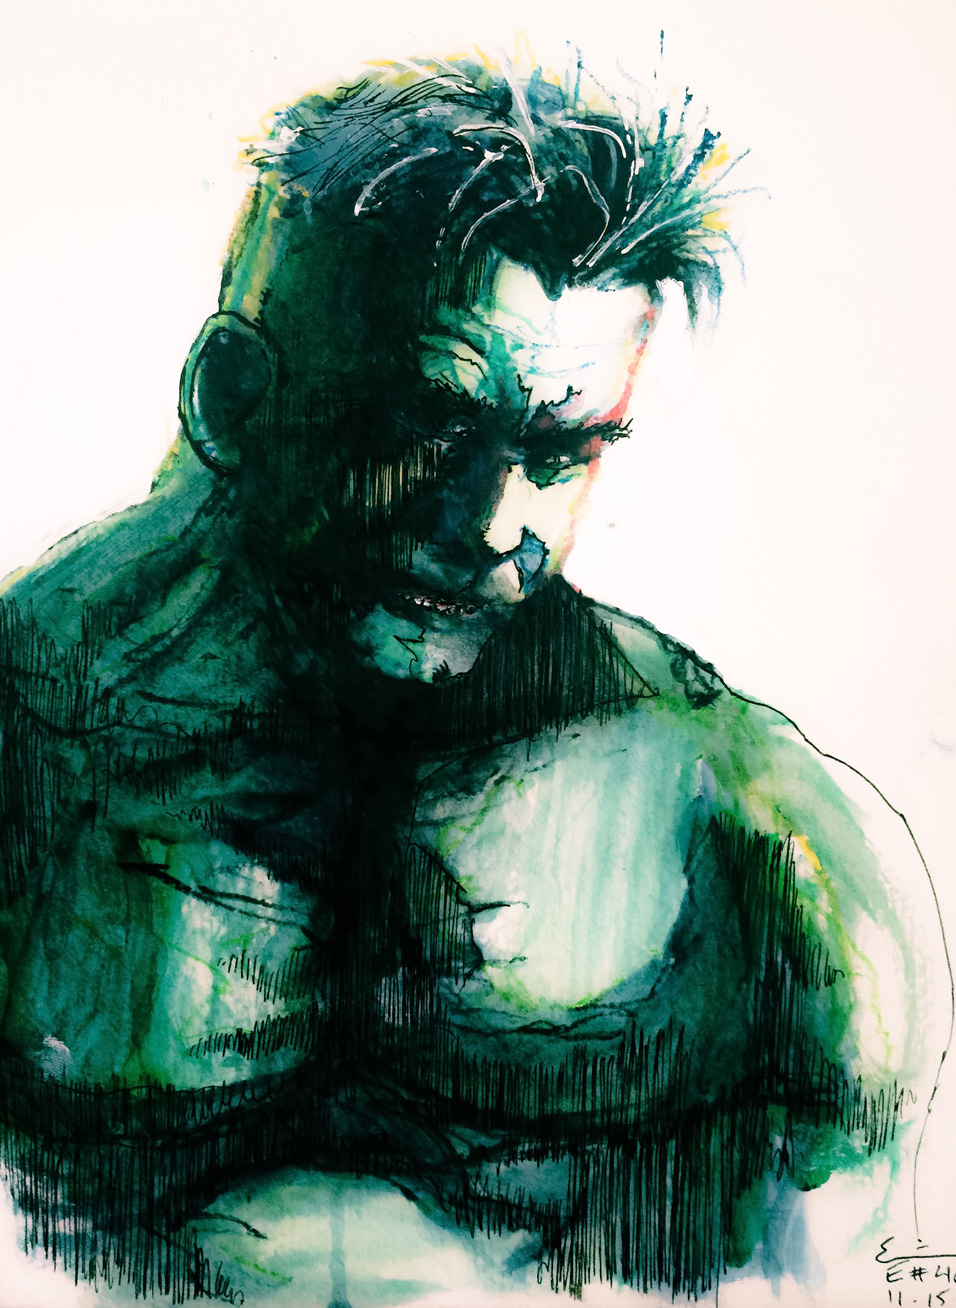 11.15.2015 Everyday Number 46 Sad Hulk